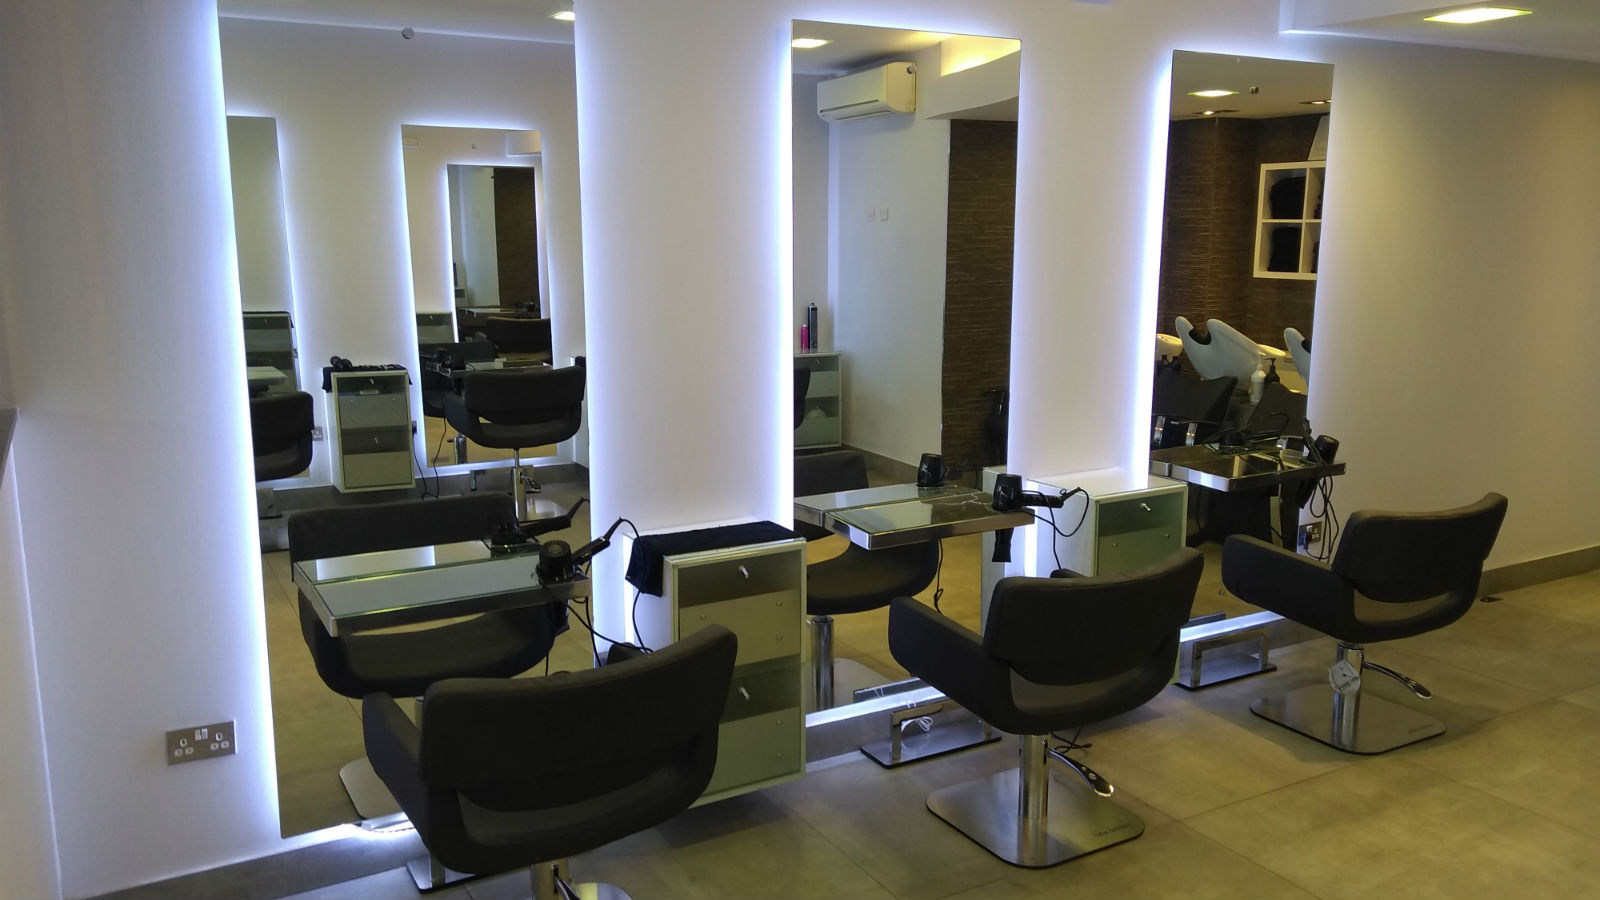 External photo of the salon